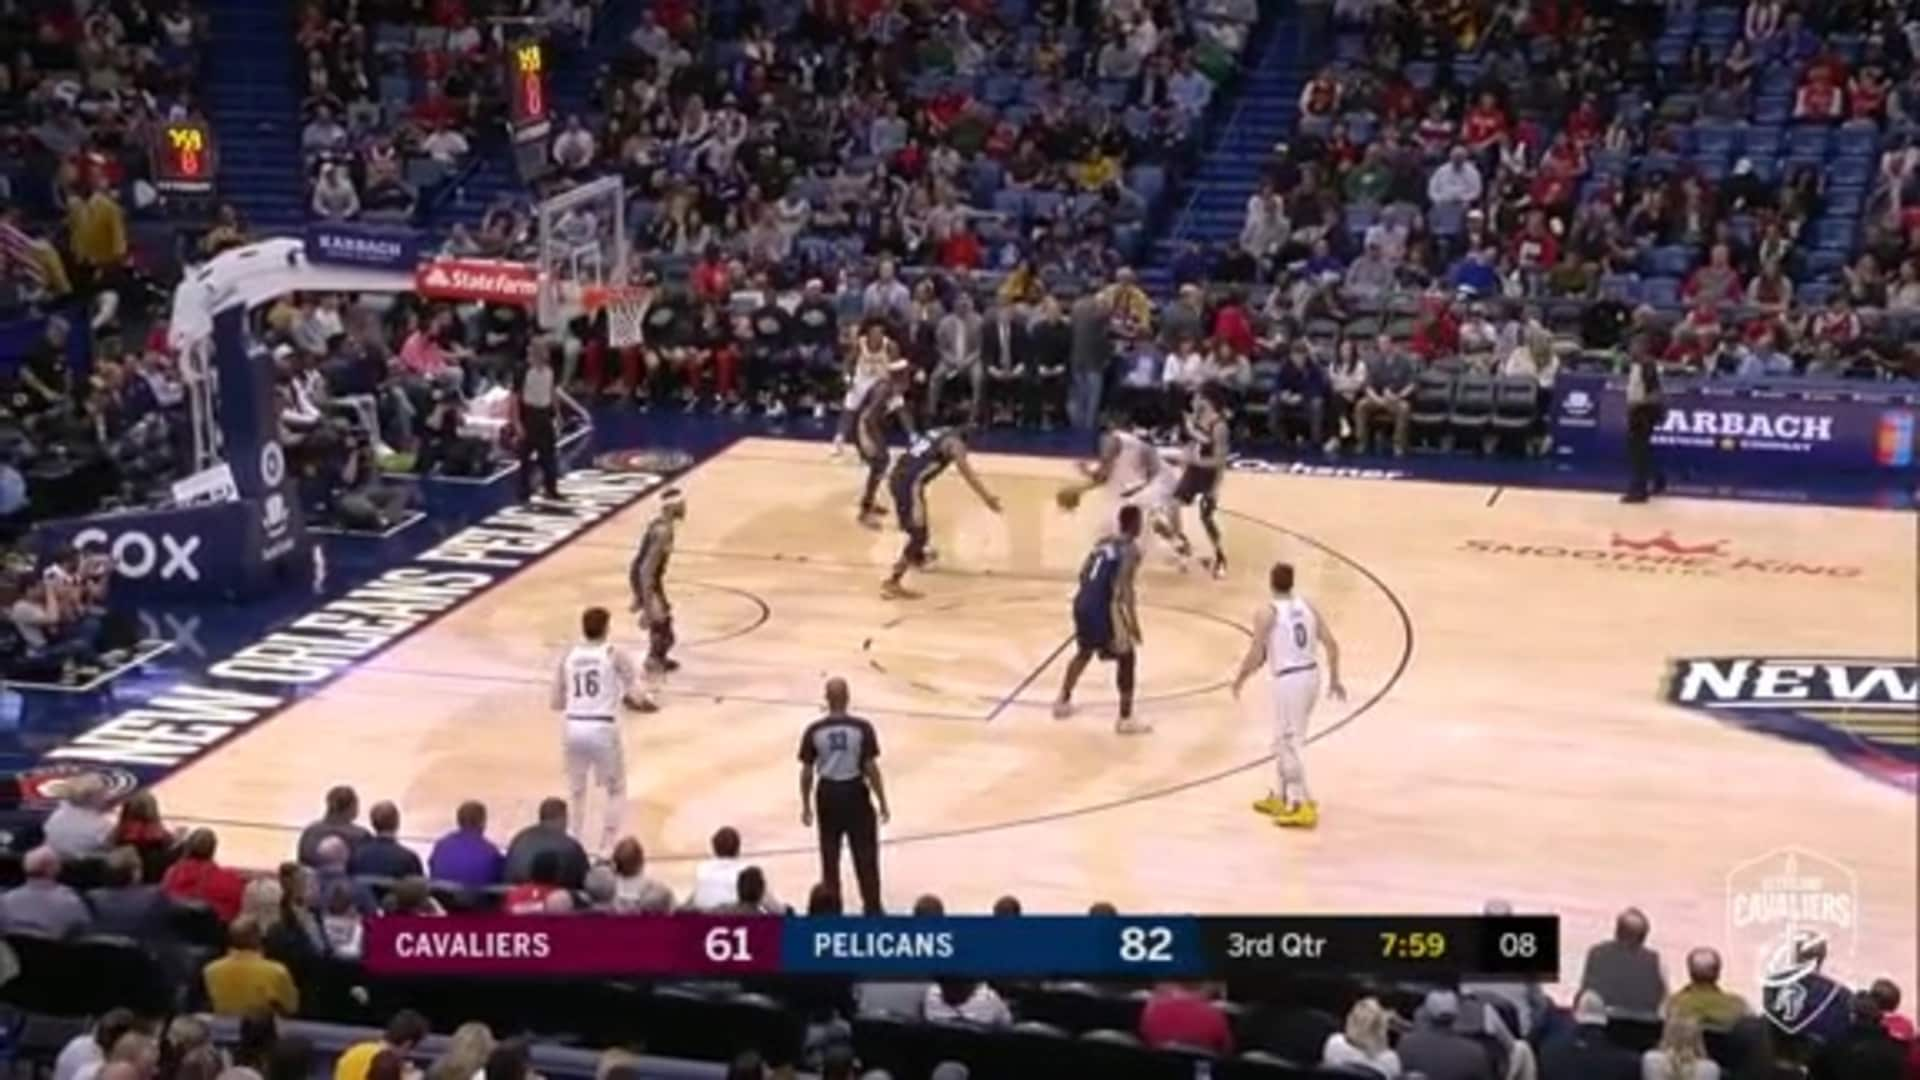 DG Weaves to the Hoop and Scores